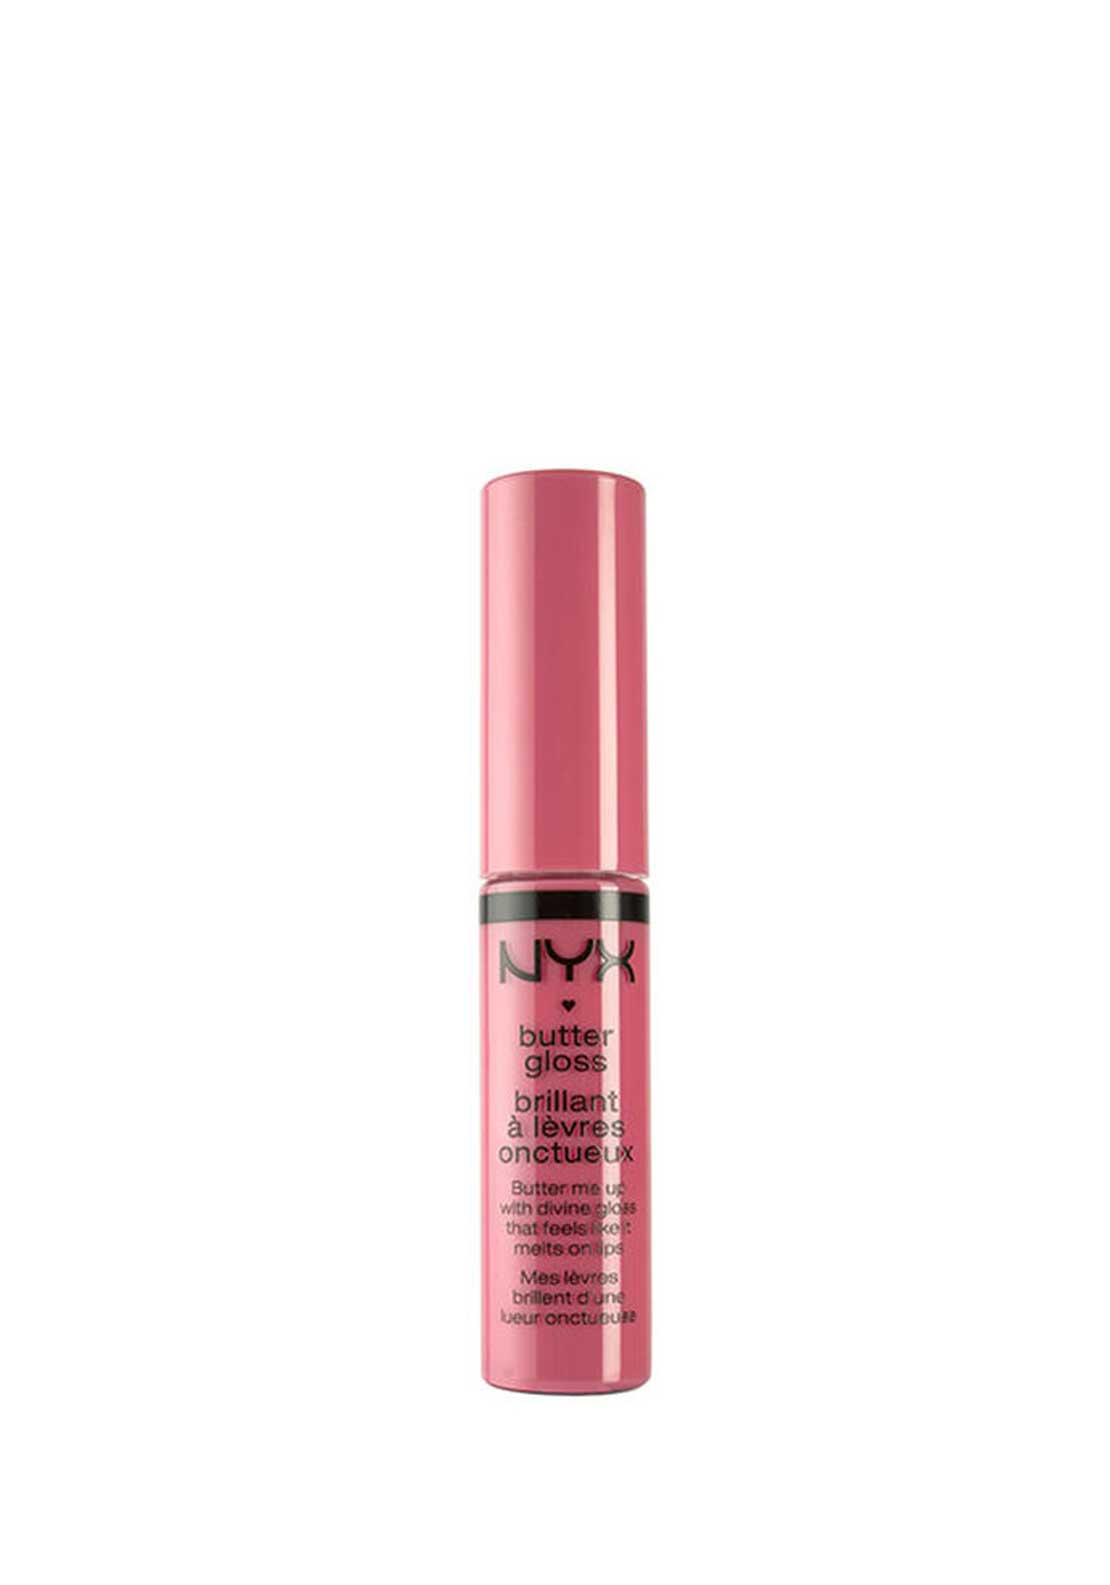 NYX Make Up Butter Gloss Lip Gloss, 09 Vanilla Cream Pie